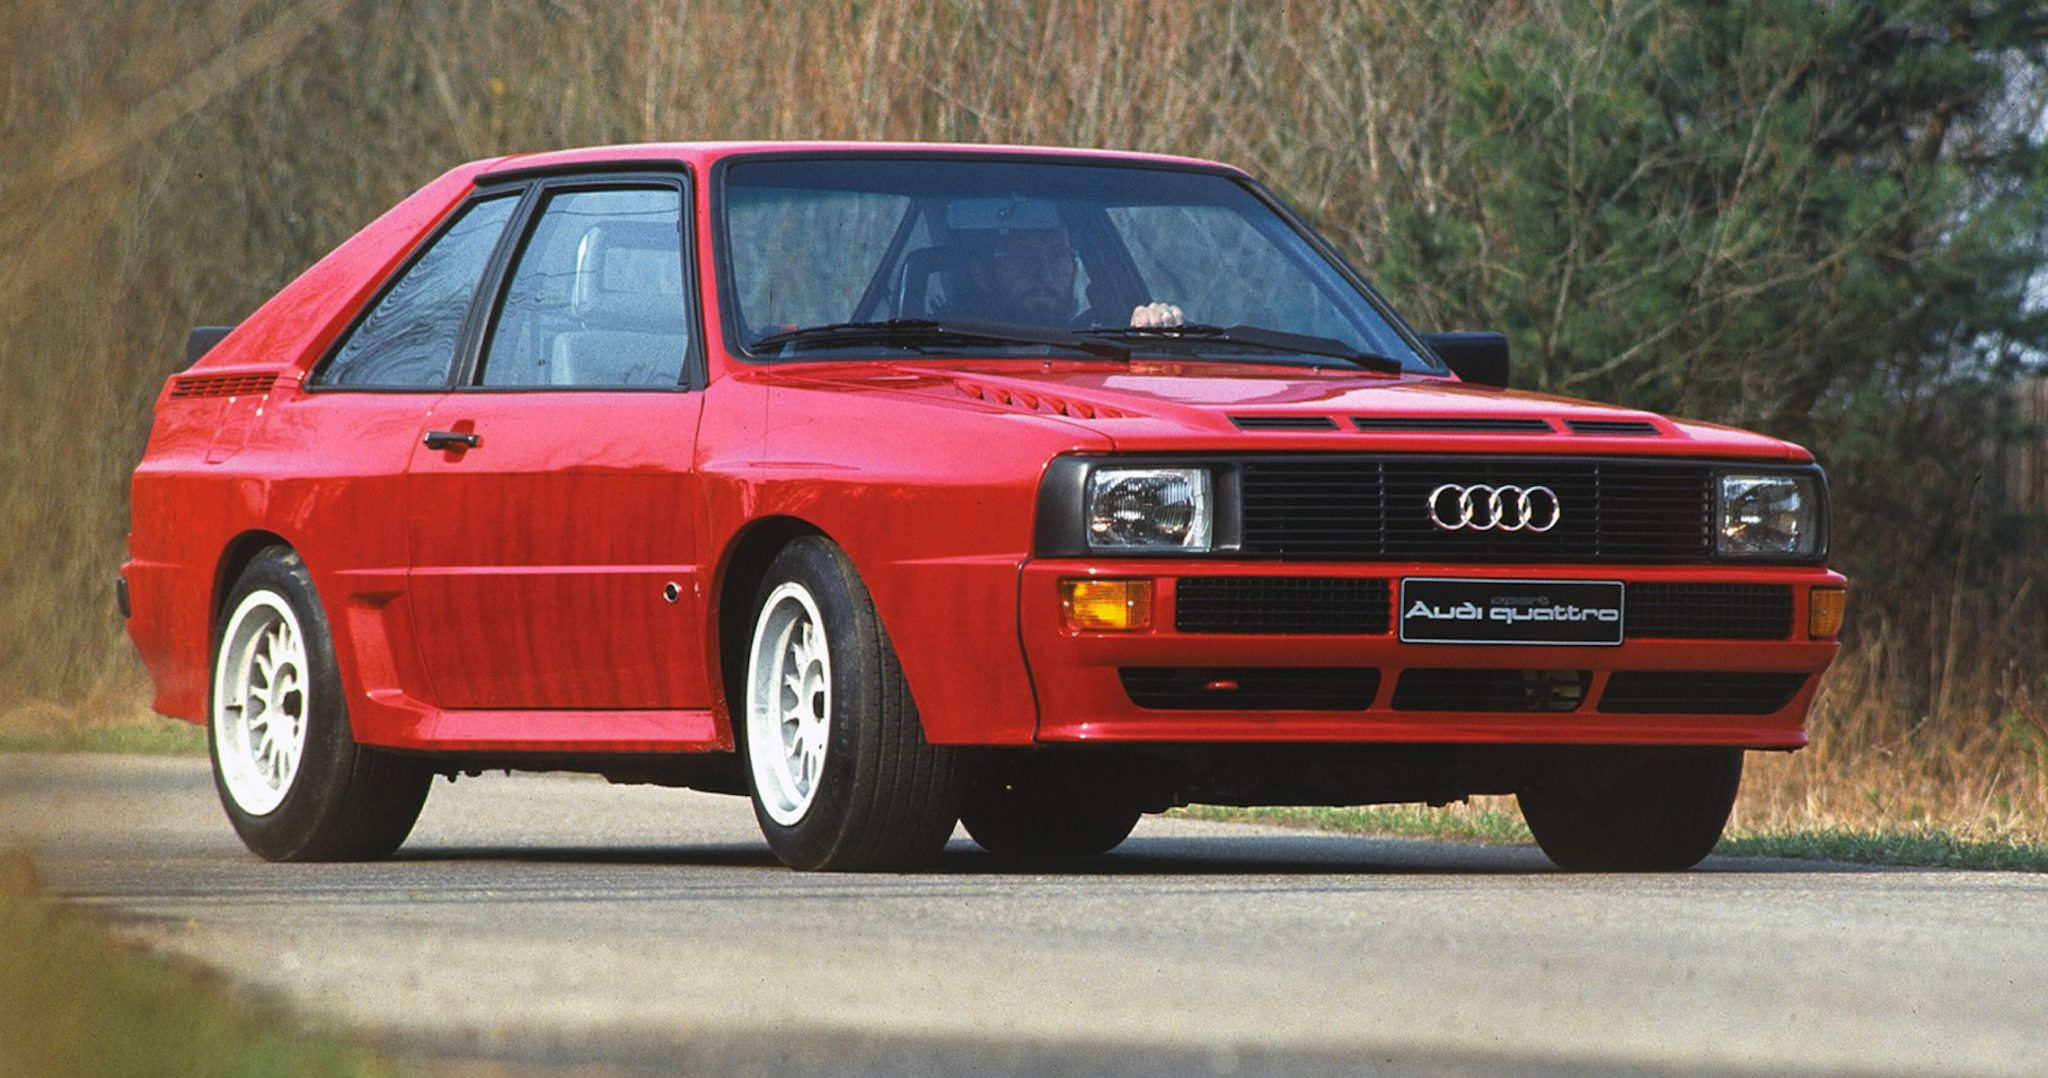 A side view of a red 1980 Audi Quattro Coupe on a road.